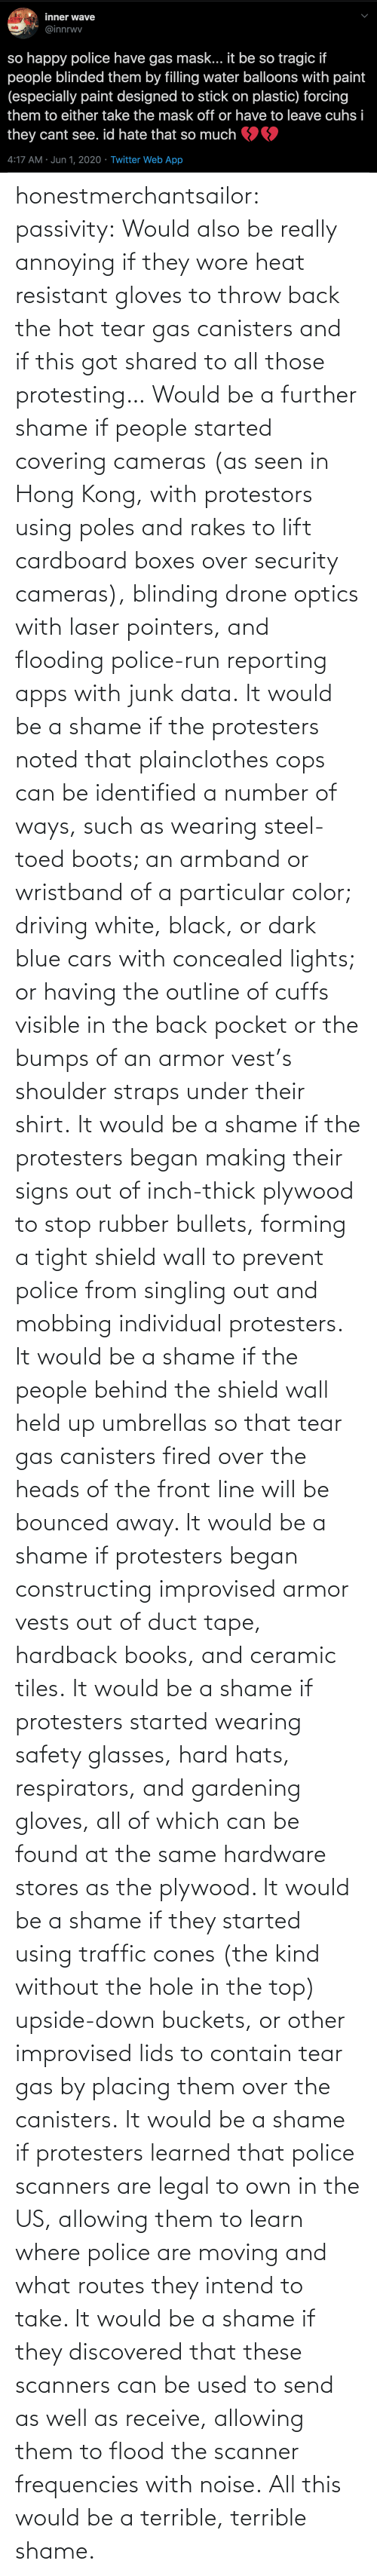 Behind The: honestmerchantsailor:  passivity: Would also be really annoying if they wore heat resistant gloves to throw back the hot tear gas canisters and if this got shared to all those protesting… Would be a further shame if people started covering cameras (as seen in Hong Kong, with protestors using poles and rakes to lift cardboard boxes over security cameras), blinding drone optics with laser pointers, and flooding police-run reporting apps with junk data. It would be a shame if the protesters noted that plainclothes cops can be identified a number of ways, such as wearing steel-toed boots; an armband or wristband of a particular color; driving white, black, or dark blue cars with concealed lights; or having the outline of cuffs visible in the back pocket or the bumps of an armor vest's shoulder straps under their shirt. It would be a shame if the protesters began making their signs out of inch-thick plywood to stop rubber bullets, forming a tight shield wall to prevent police from singling out and mobbing individual protesters. It would be a shame if the people behind the shield wall held up umbrellas so that tear gas canisters fired over the heads of the front line will be bounced away. It would be a shame if protesters began constructing improvised armor vests out of duct tape, hardback books, and ceramic tiles. It would be a shame if protesters started wearing safety glasses, hard hats, respirators, and gardening gloves, all of which can be found at the same hardware stores as the plywood. It would be a shame if they started using traffic cones (the kind without the hole in the top) upside-down buckets, or other improvised lids to contain tear gas by placing them over the canisters. It would be a shame if protesters learned that police scanners are legal to own in the US, allowing them to learn where police are moving and what routes they intend to take. It would be a shame if they discovered that these scanners can be used to send as well as receive, allowing them to flood the scanner frequencies with noise. All this would be a terrible, terrible shame.